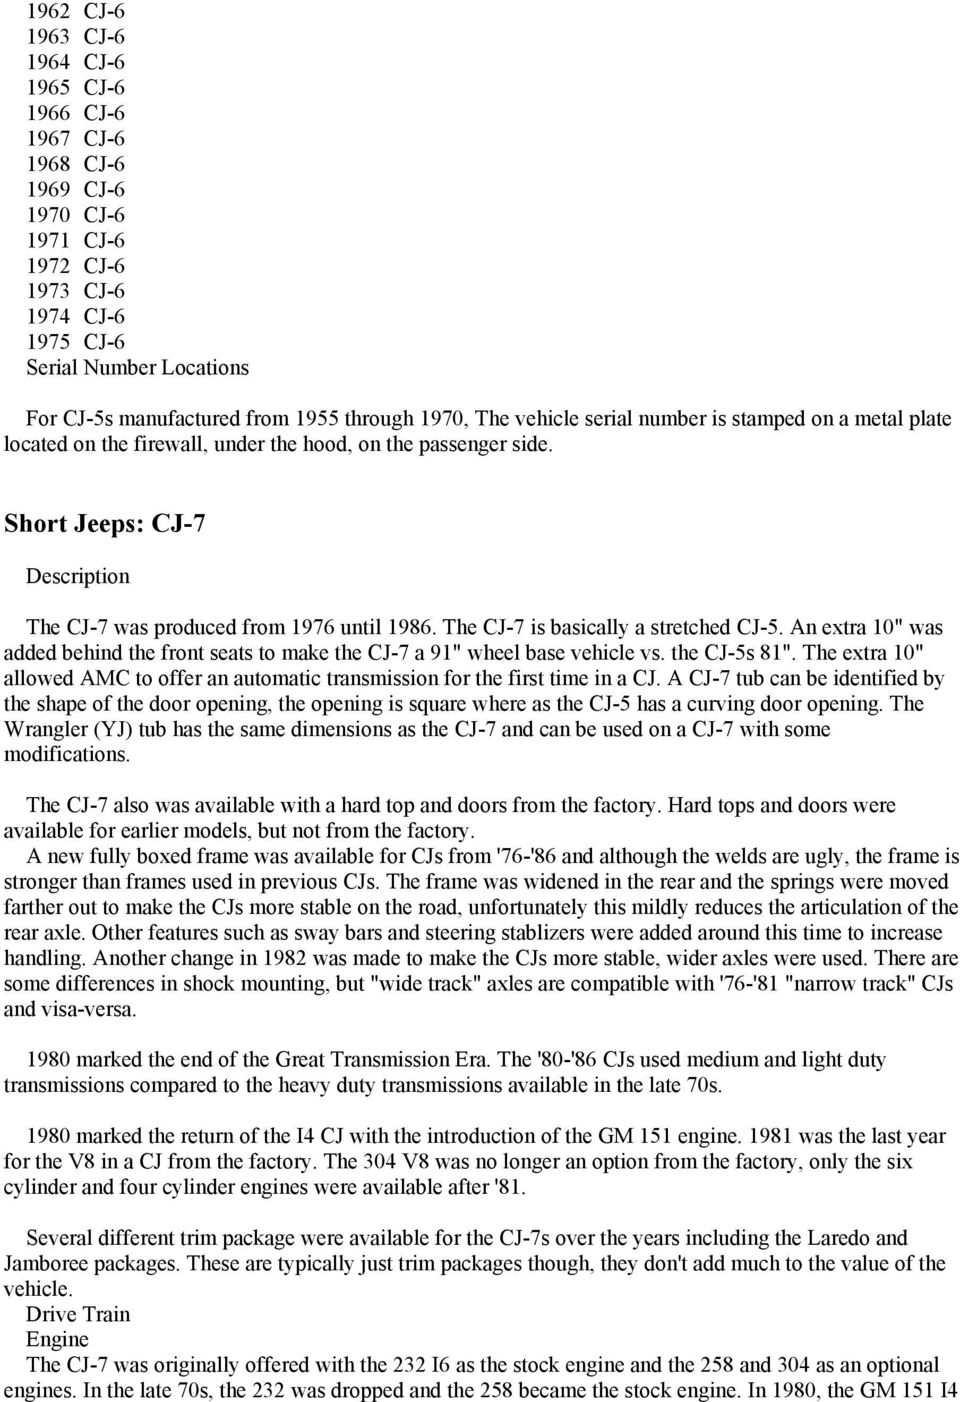 Identifying Jeeps  Military Jeeps: M38  Military Jeeps: M38A1  - PDF